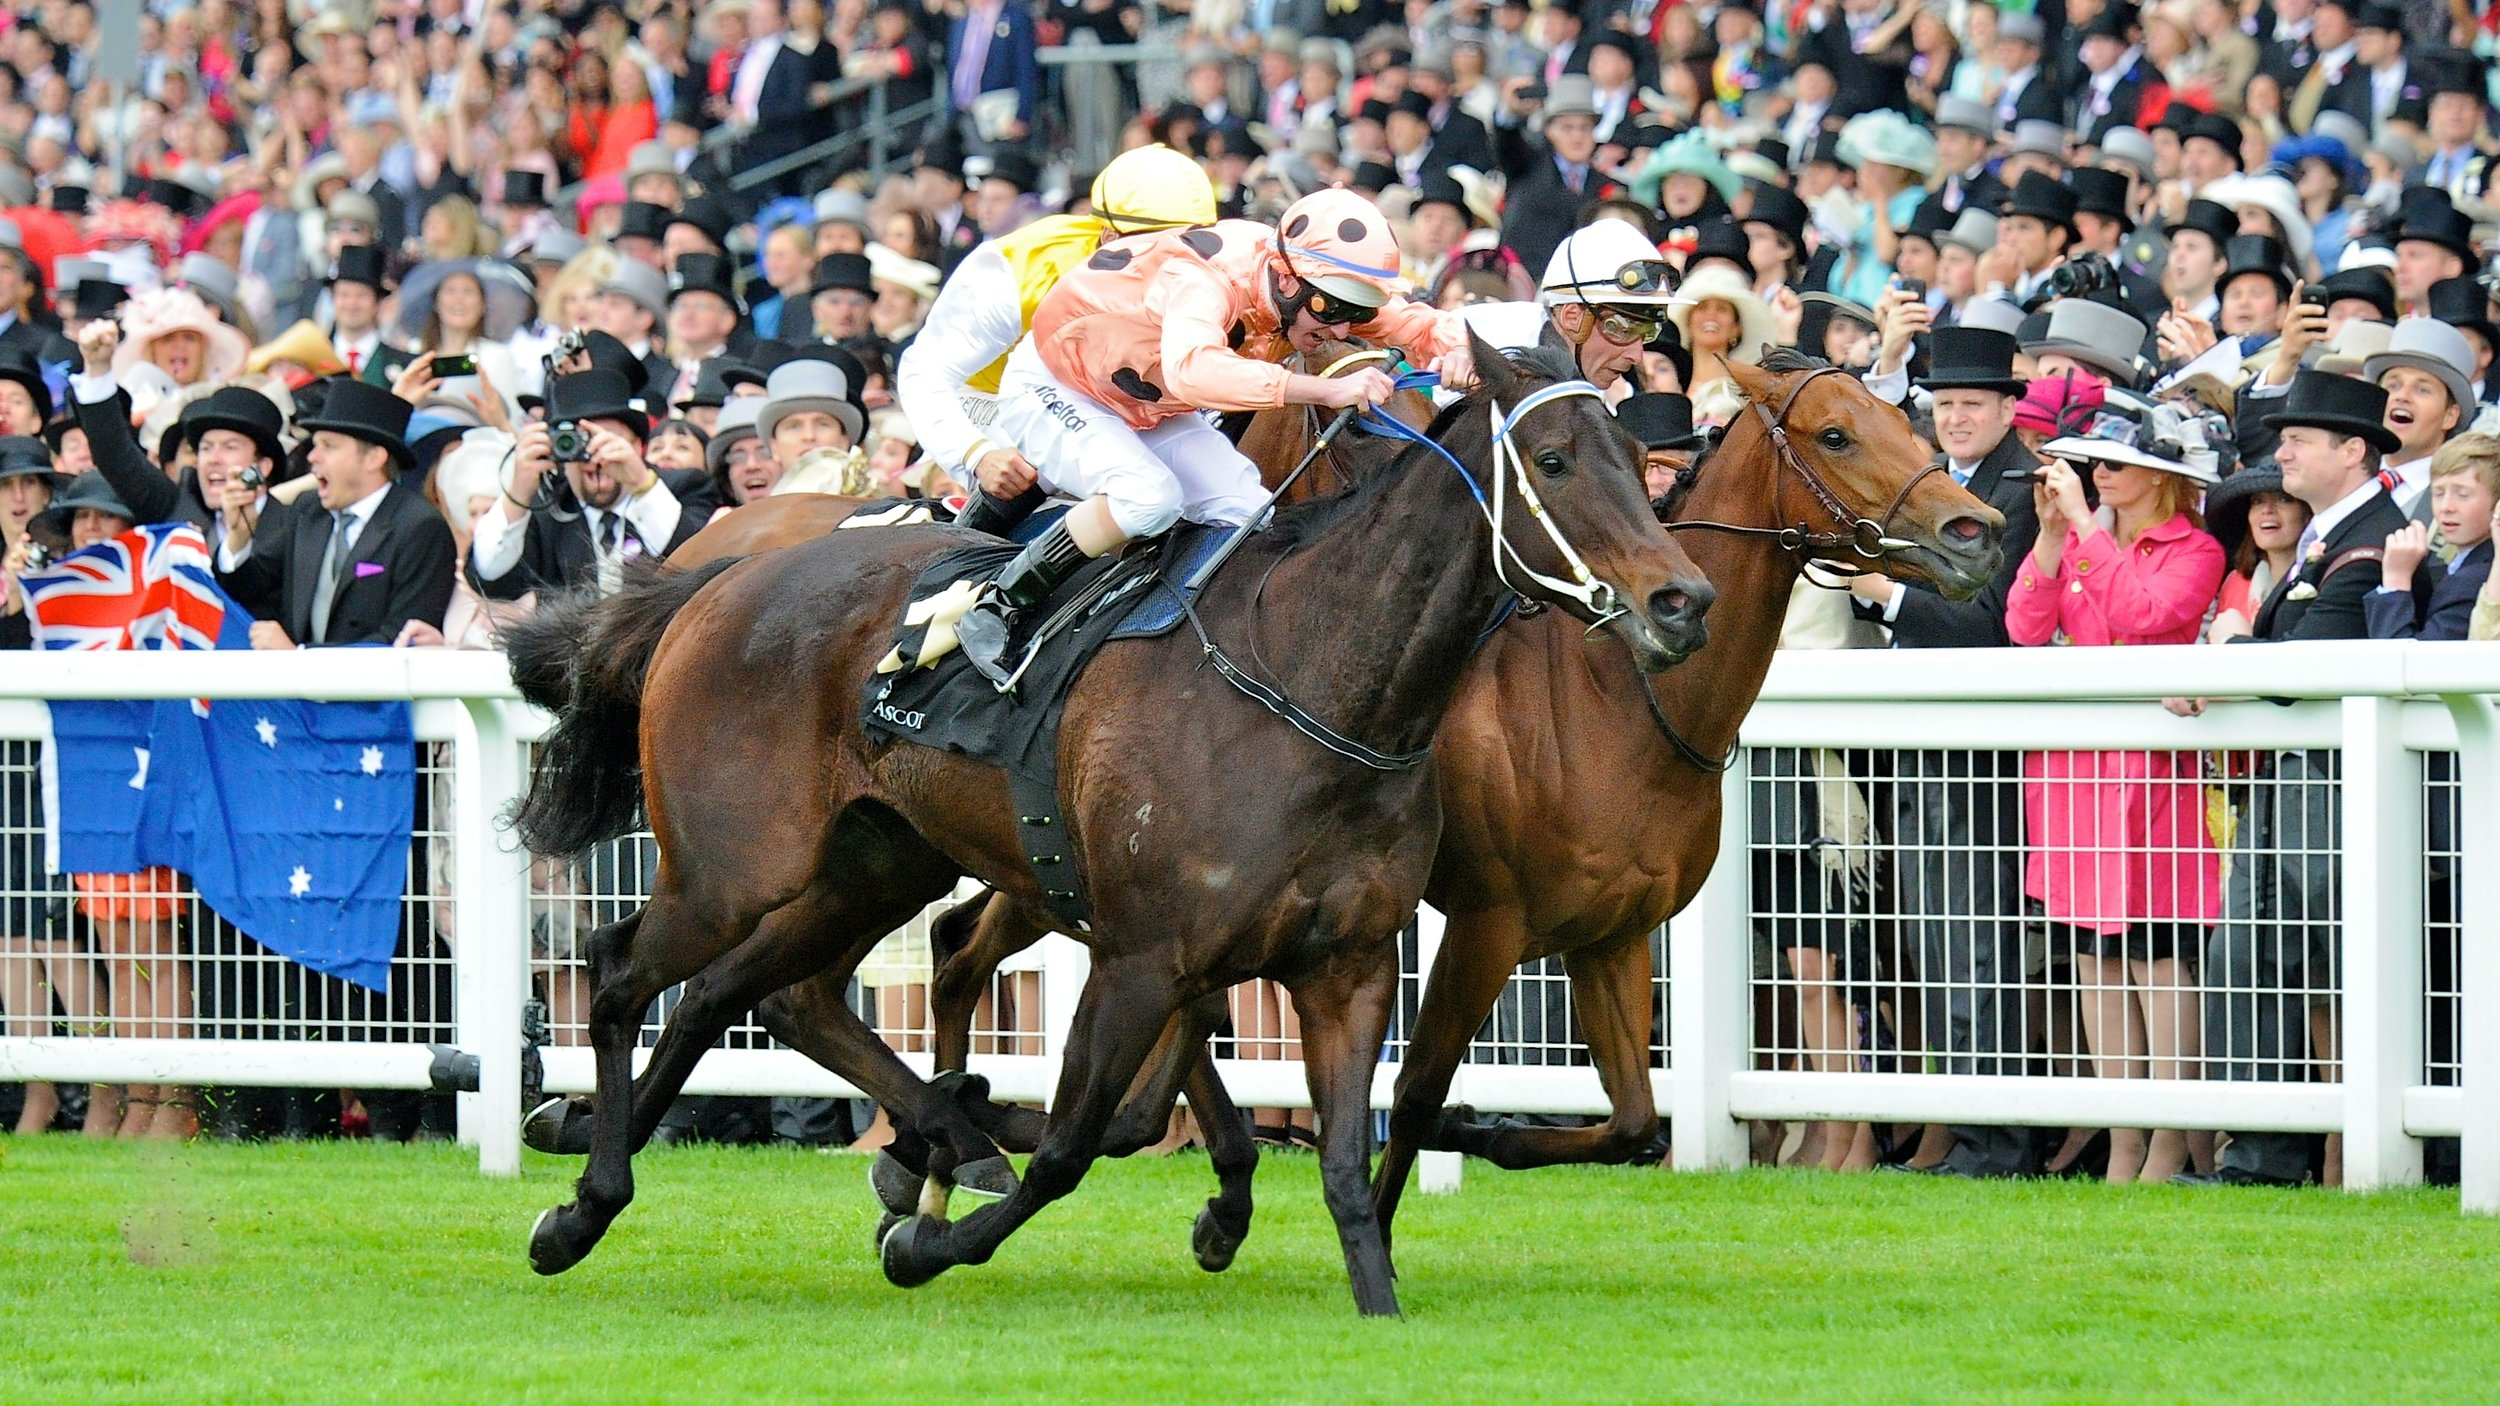 Black Caviar wins the Gp1 Diamond Jubilee Stakes at Ascot